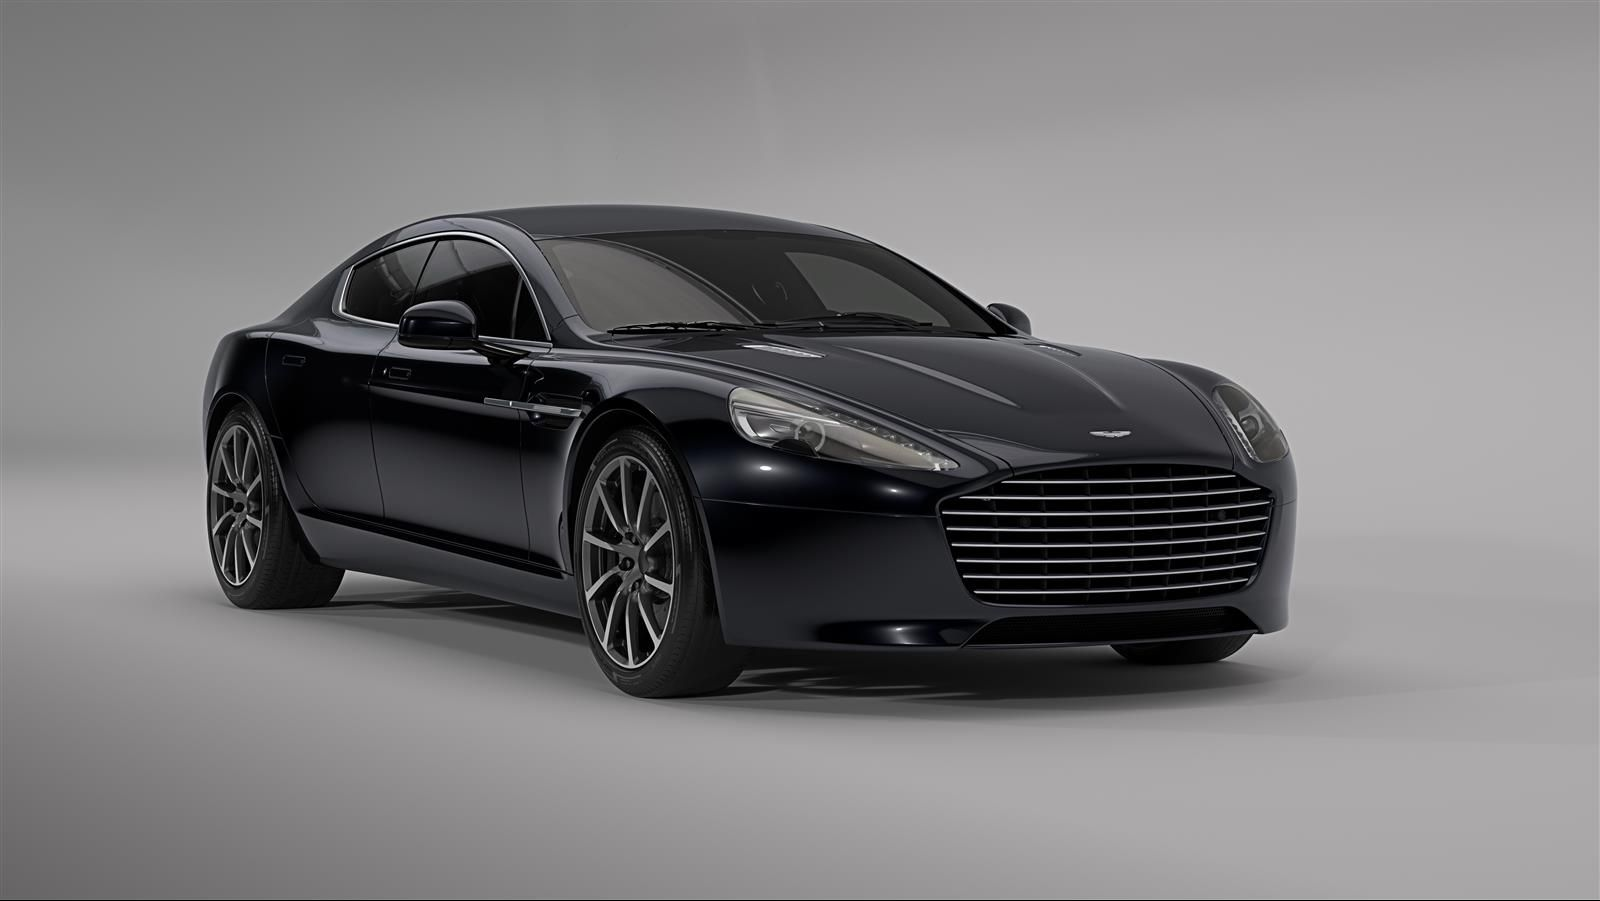 Aston Martin Rapide S Overview Awesome Aston Martin